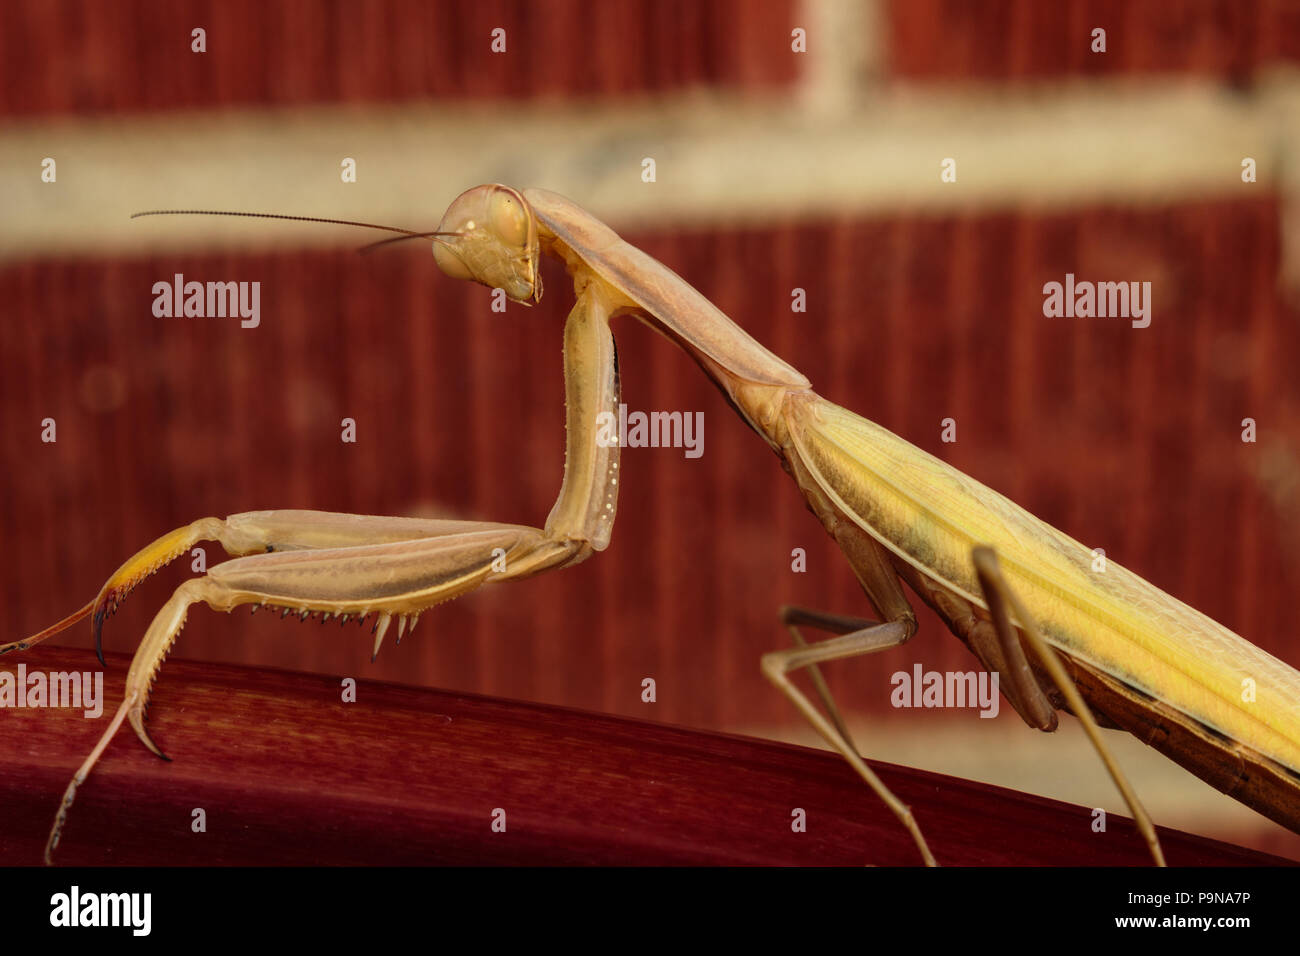 A preying mantis tiliting its head, while looking right at you - Stock Image